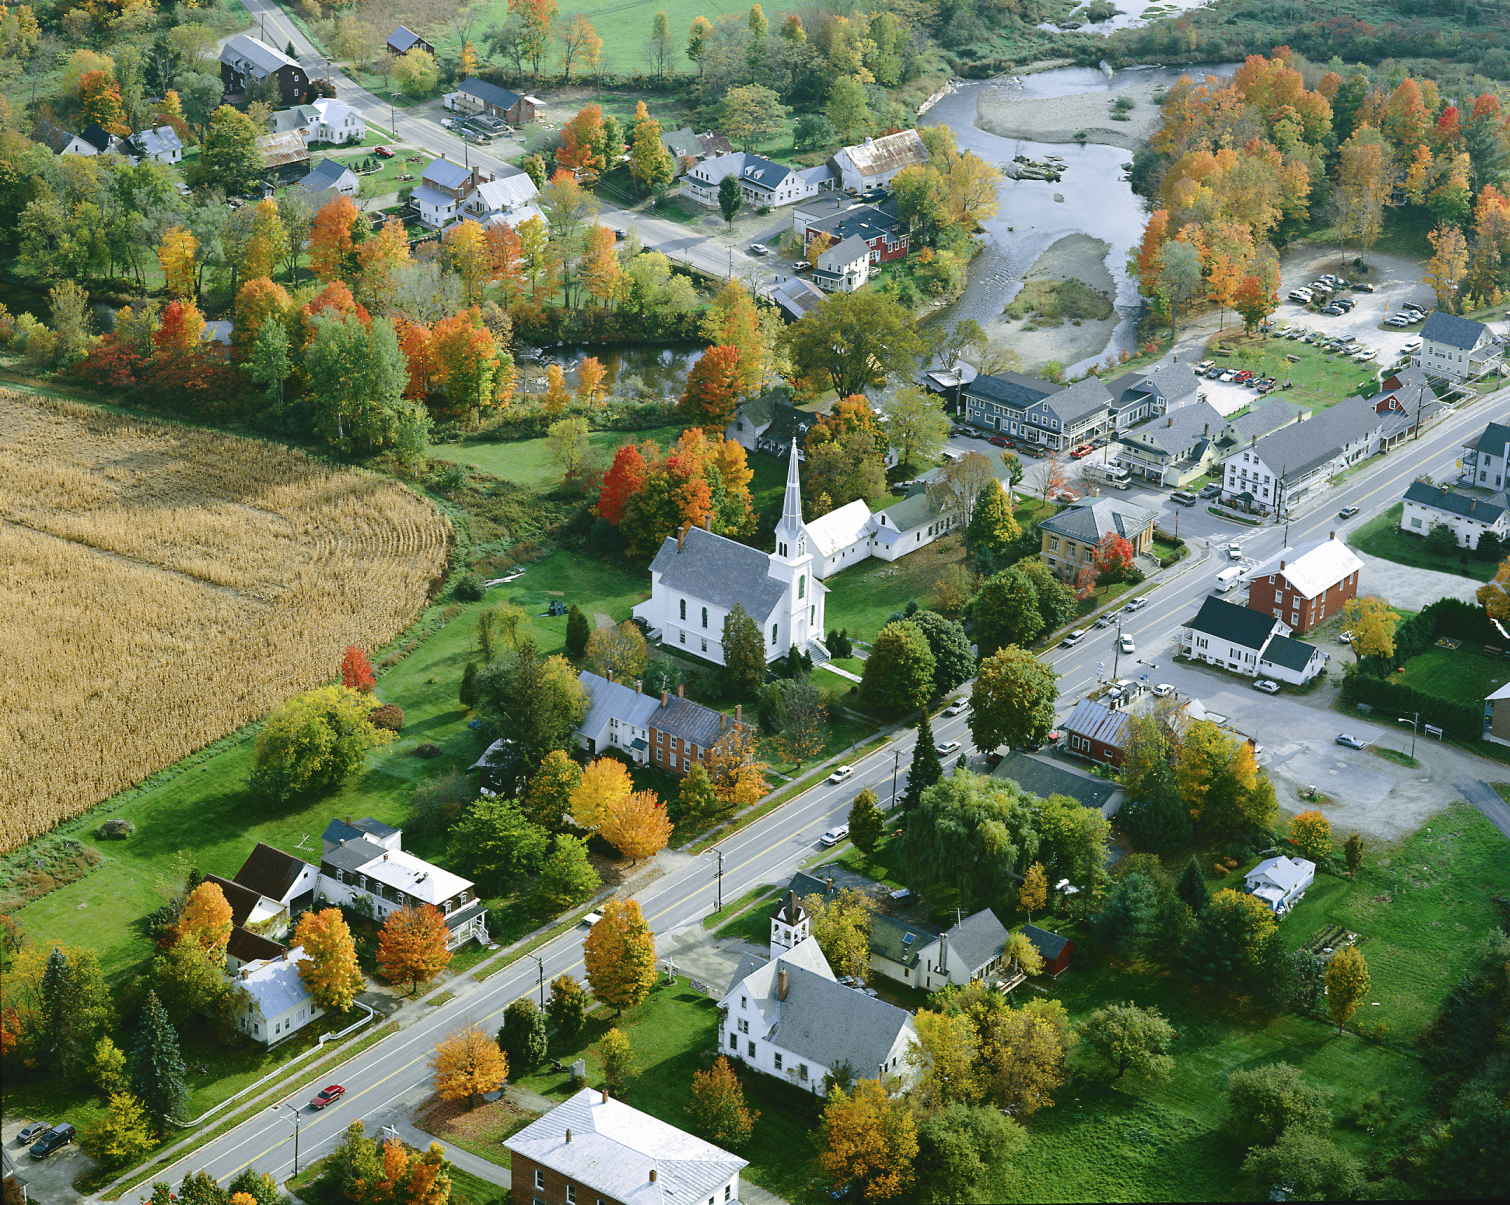 Aerial view of a small rural town.